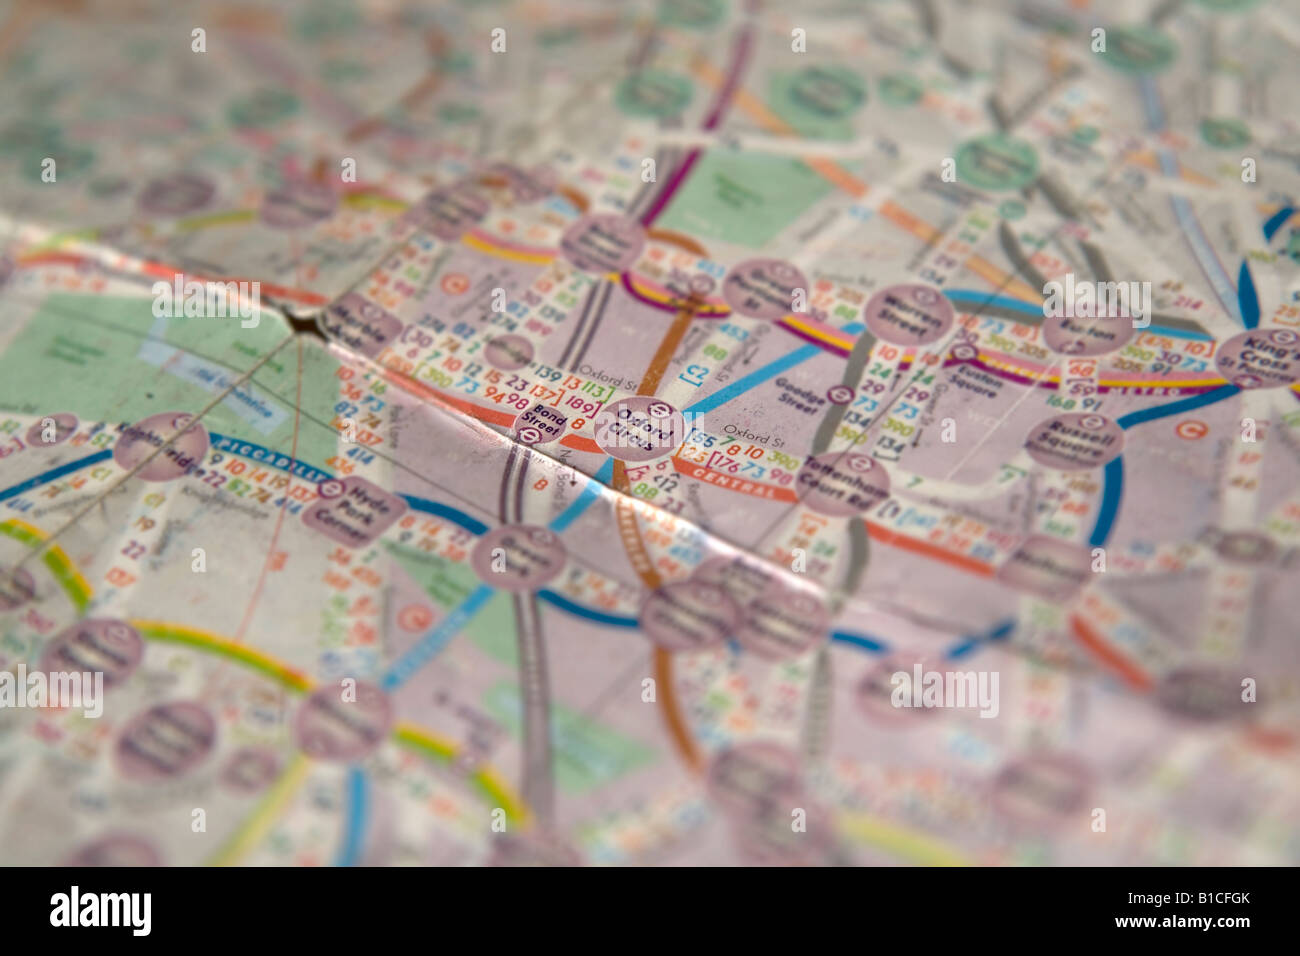 Oxford Circus Highlighted On A Map Of London Produced By Quickmap